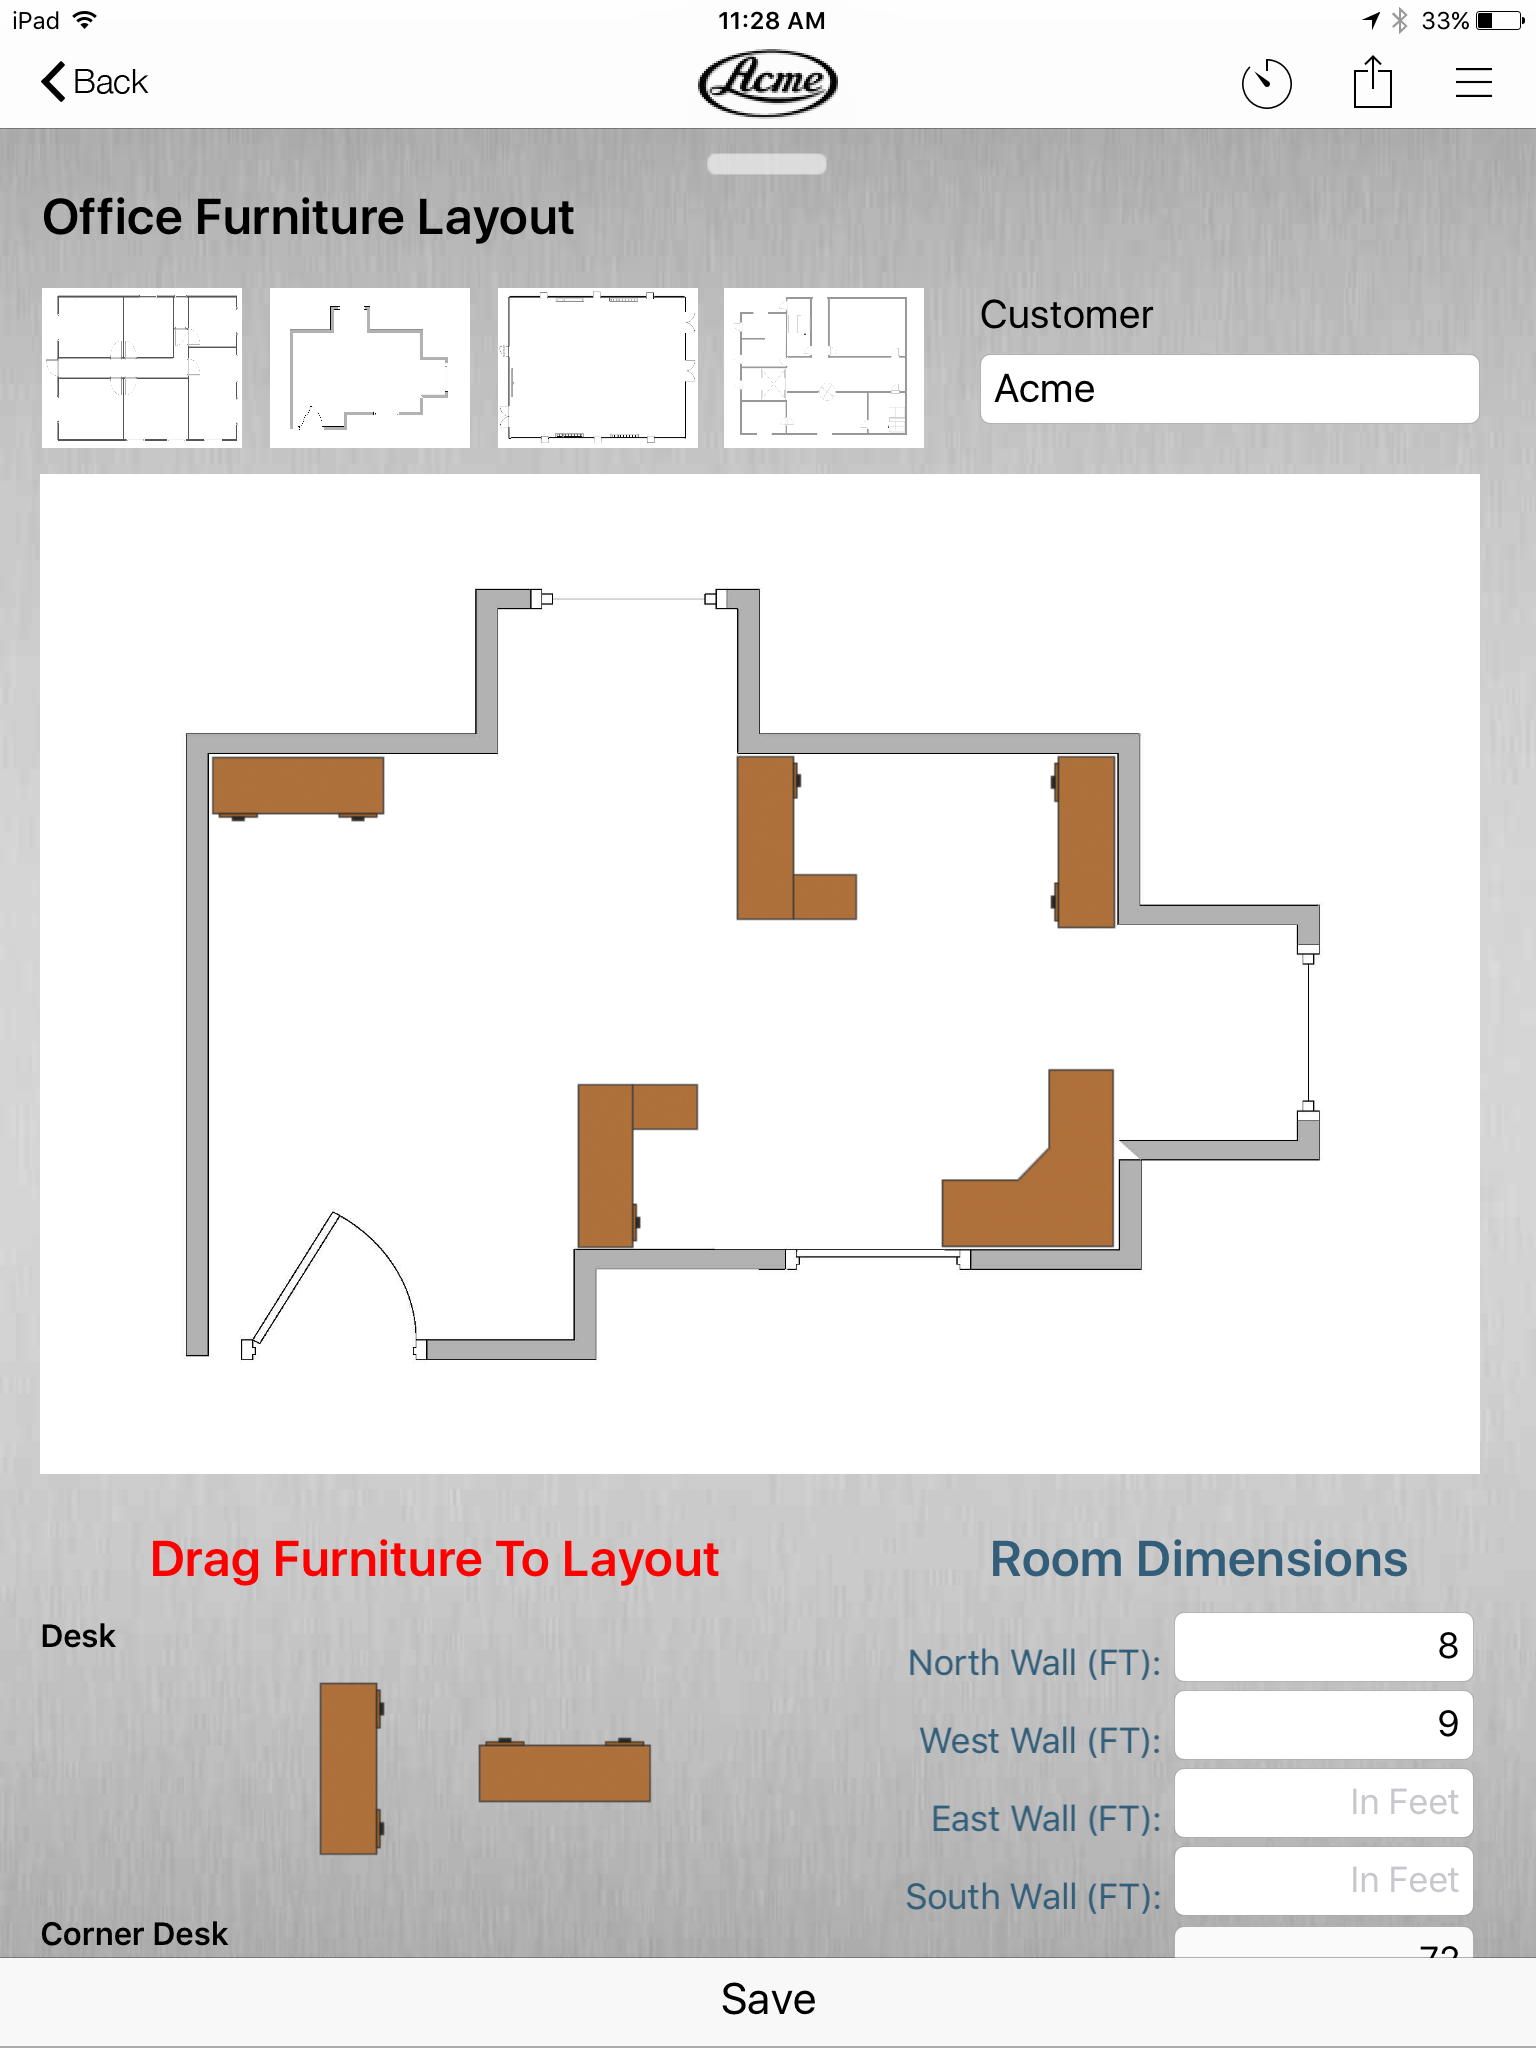 Office furniture layout form example on the inBound app